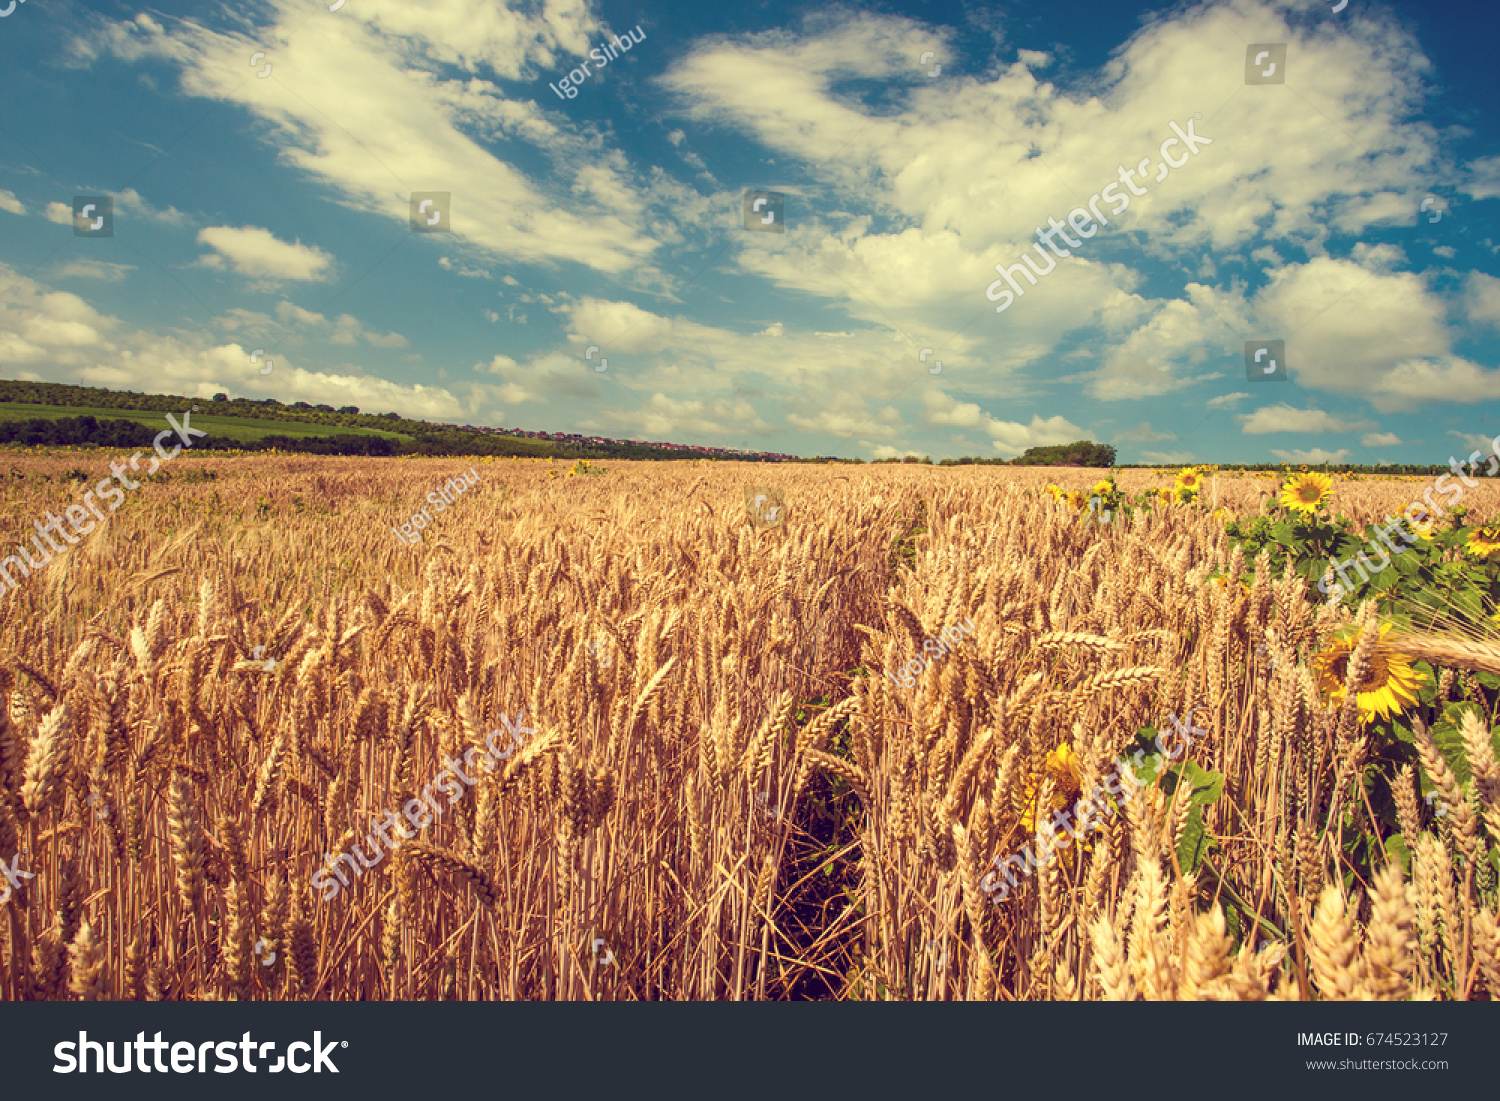 Summer landscape with wheat field and sunflowers. Gold wheat field. Toned. #674523127